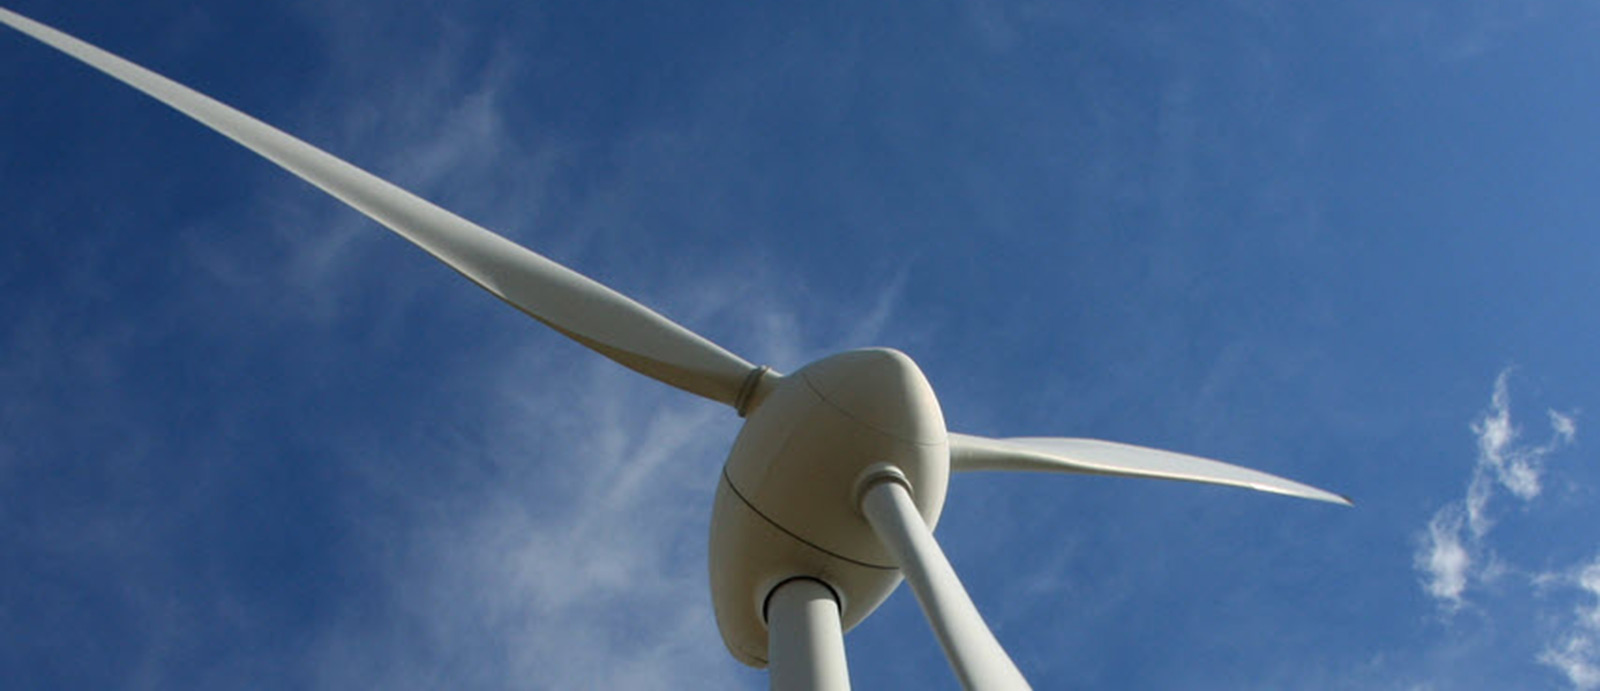 Close up photo of wind turbine